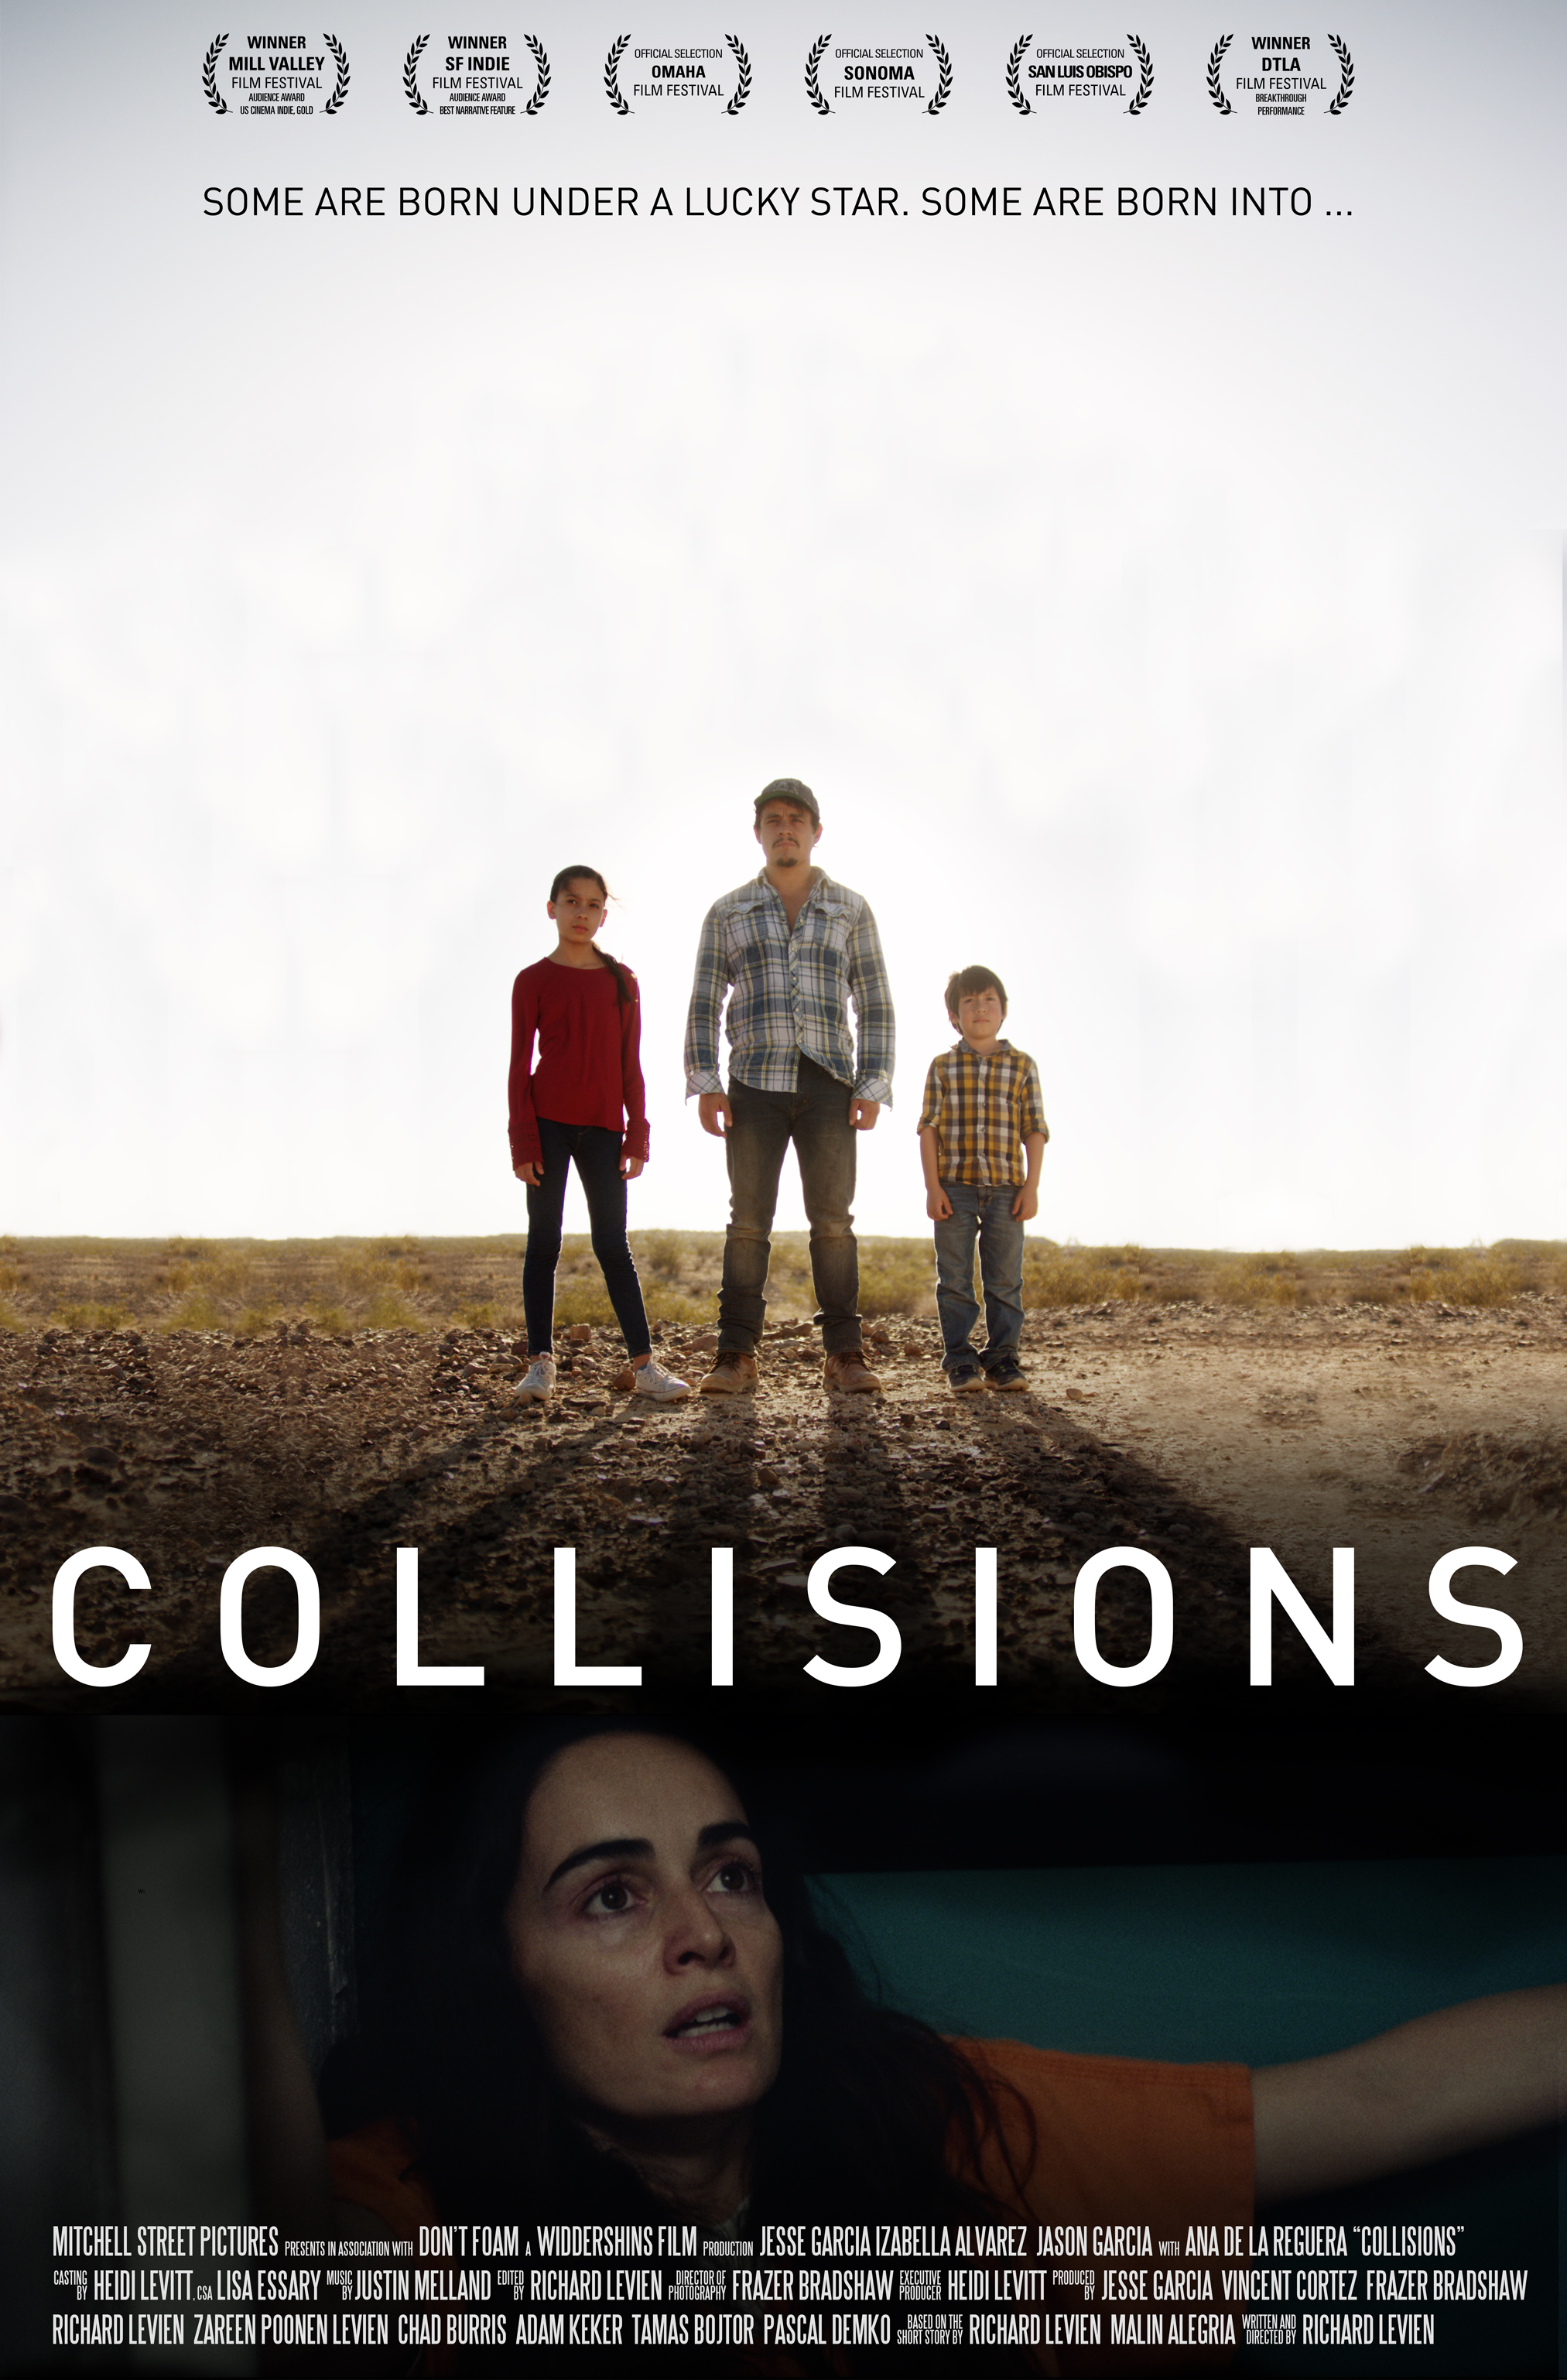 collisions-poster-2-21-19(1).jpg